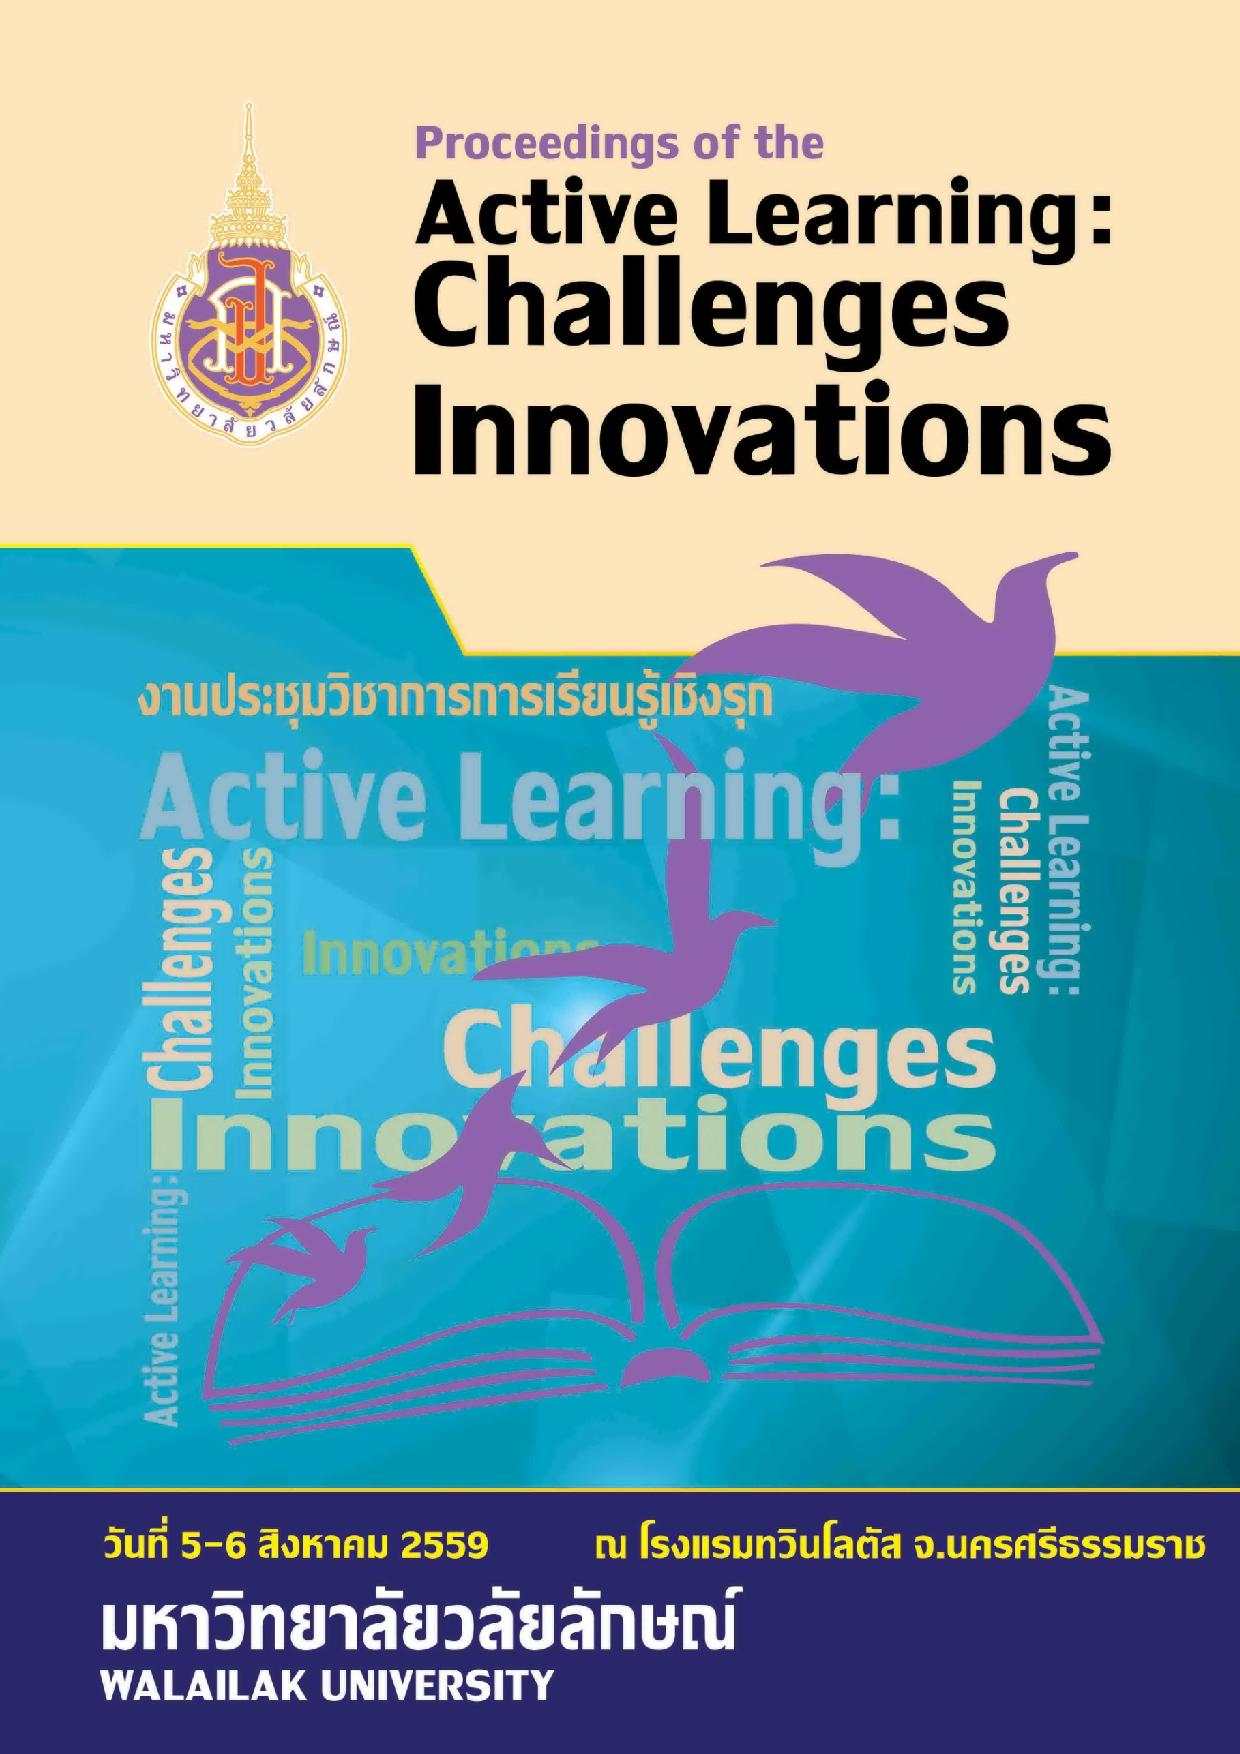 Proceedings of the Active Learning: Chalenges Innovation